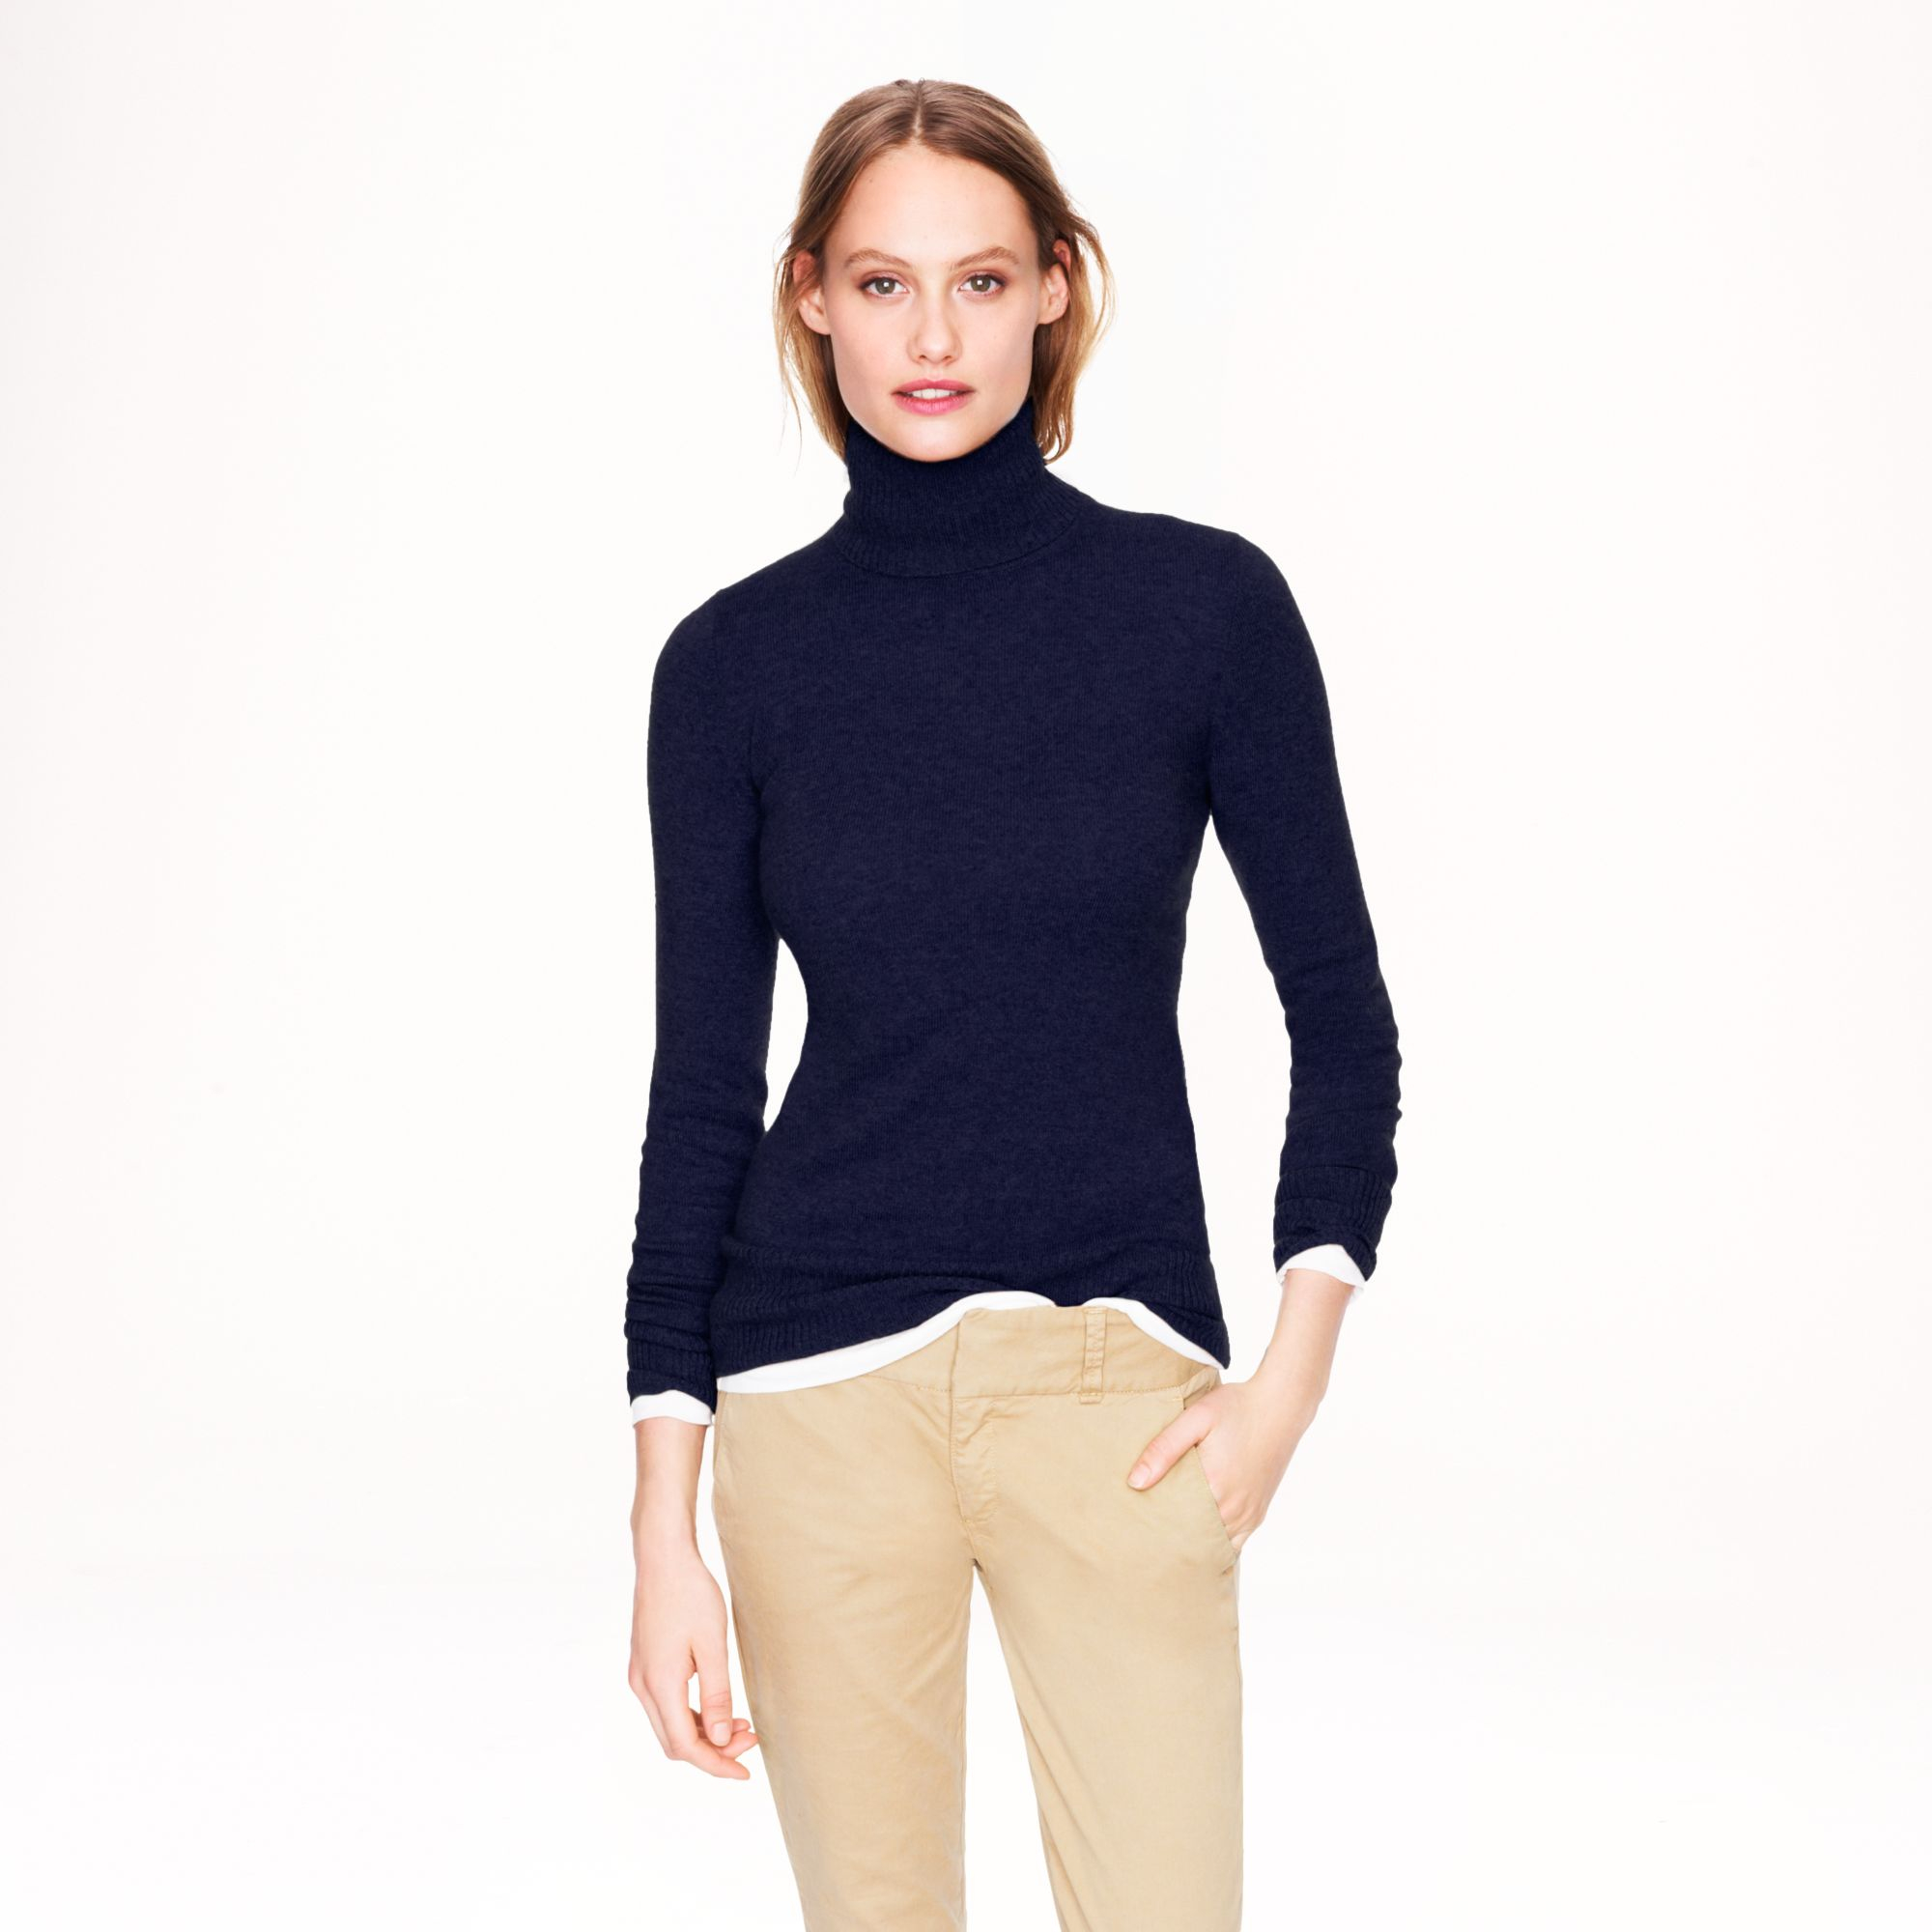 J.crew Collection Cashmere Turtleneck Sweater in Blue | Lyst